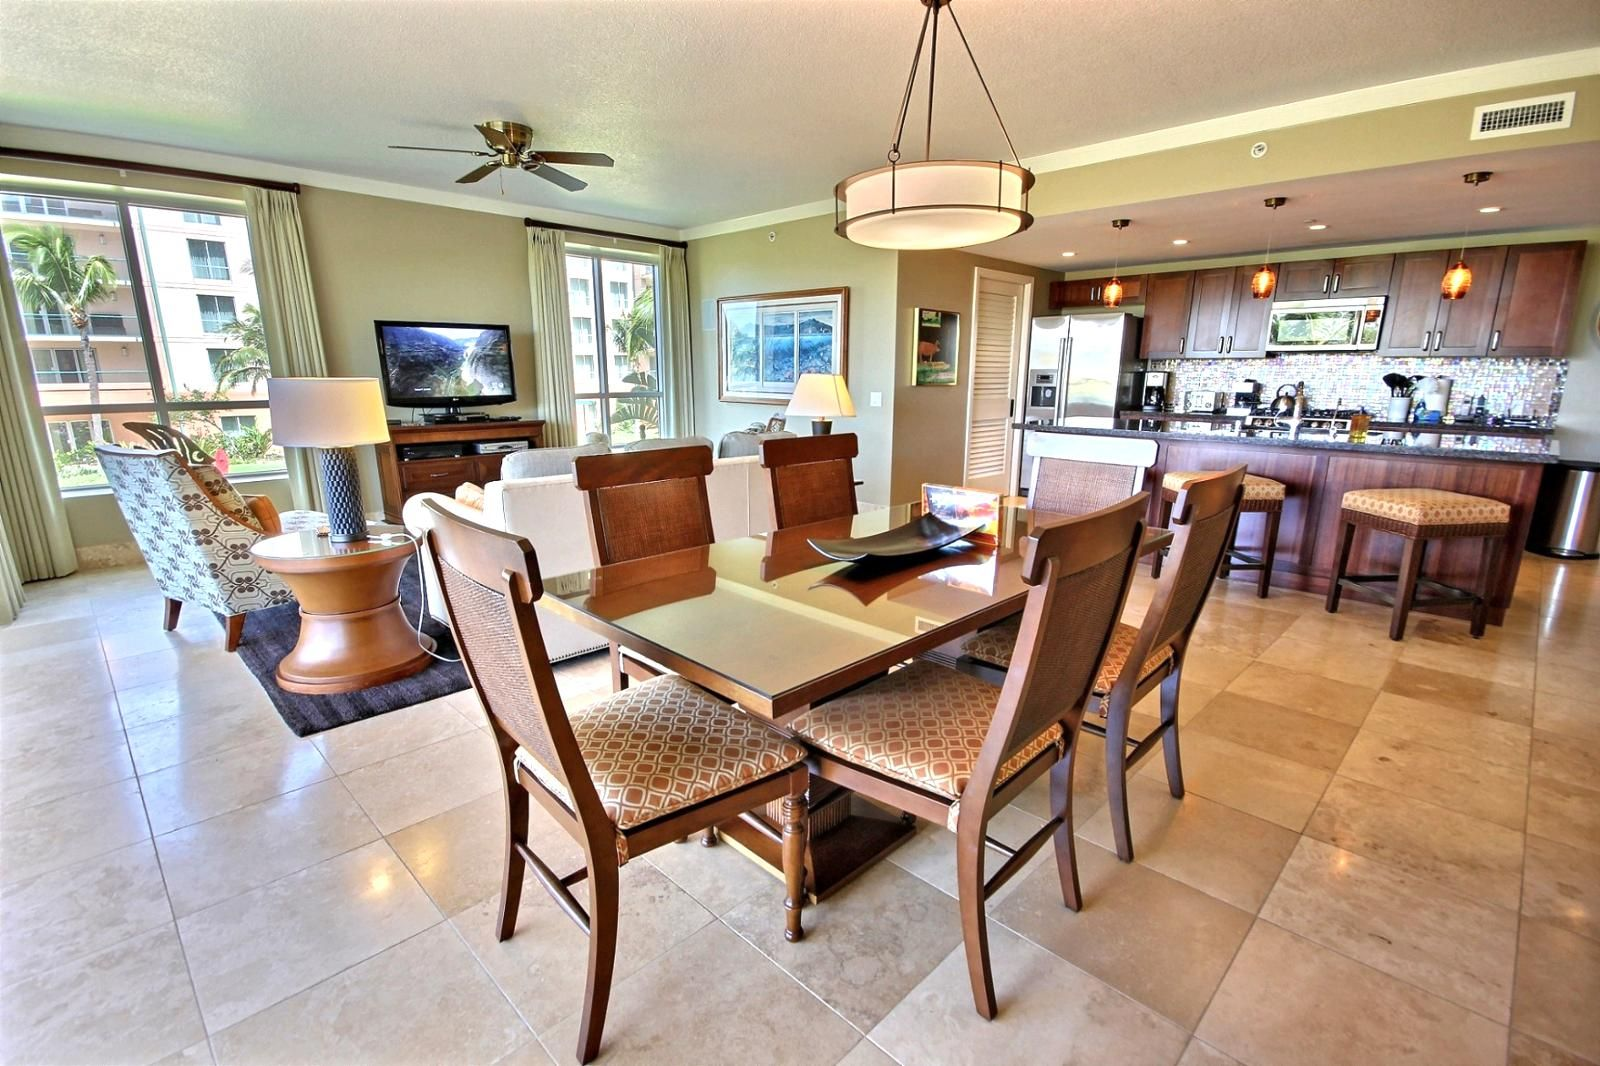 Open kitchen dining room designs - Coastal Living Flooring Living Room Kitchen Open Kitchen Living Room Floor Plan